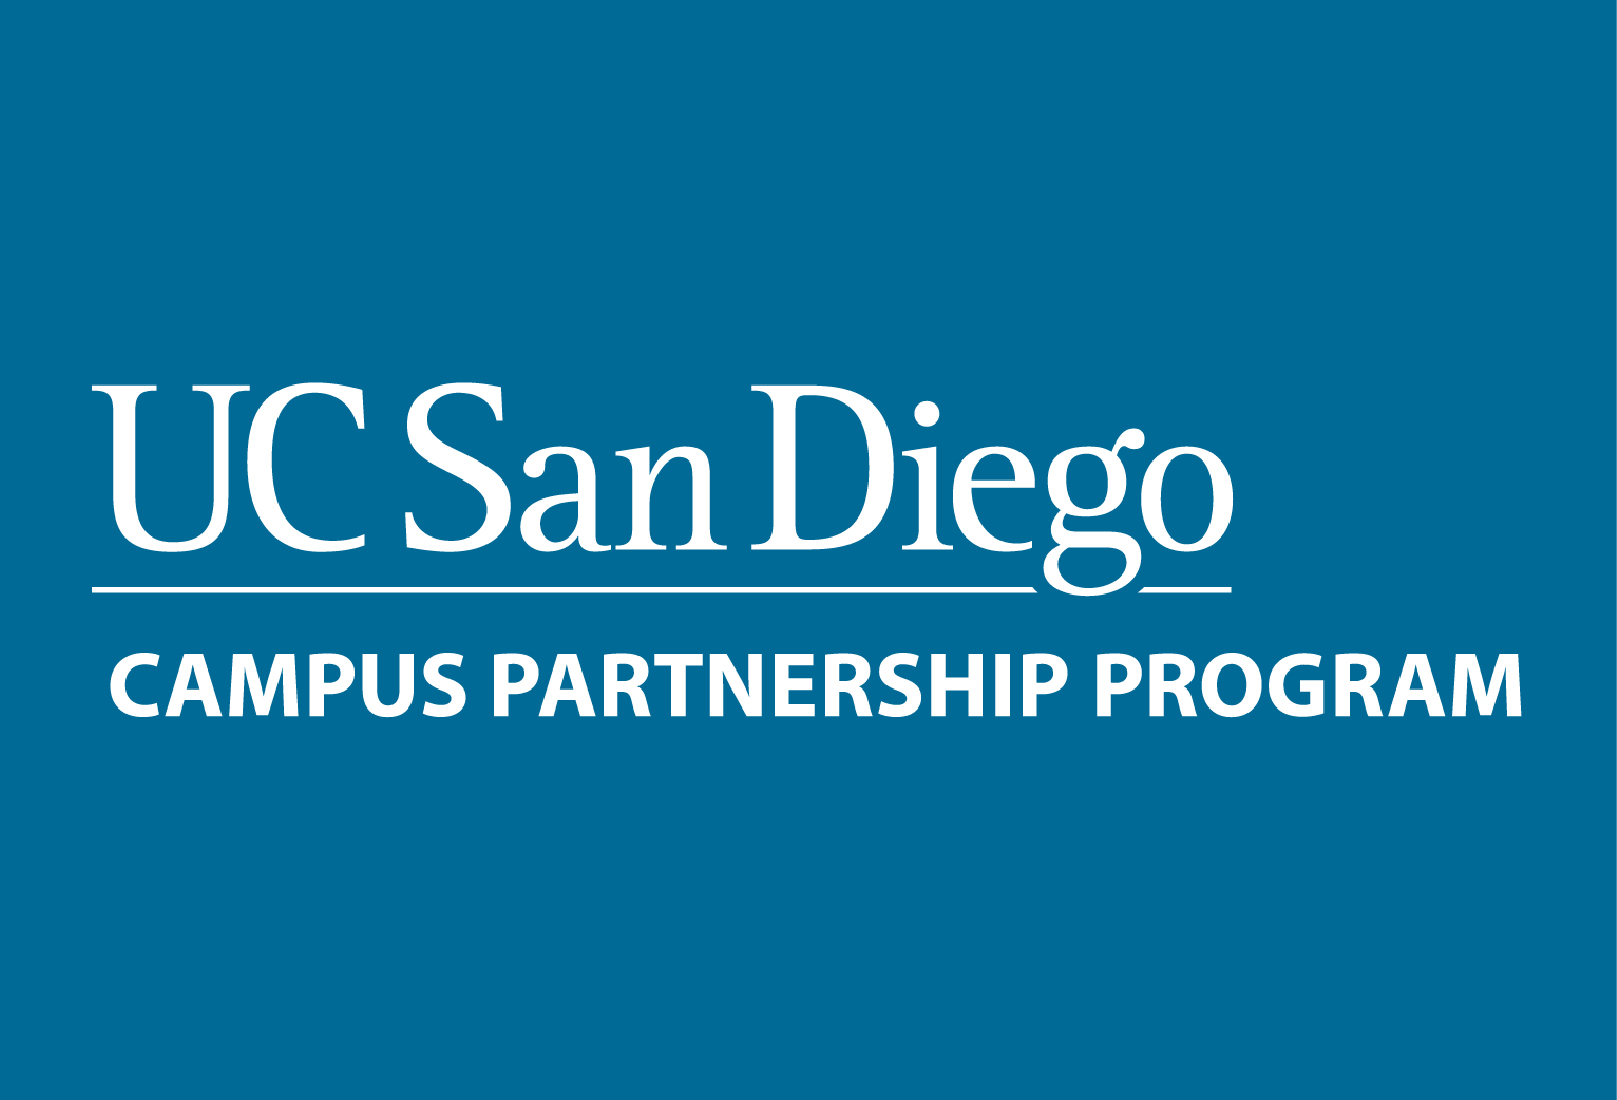 uc san diego campus partnership program logo